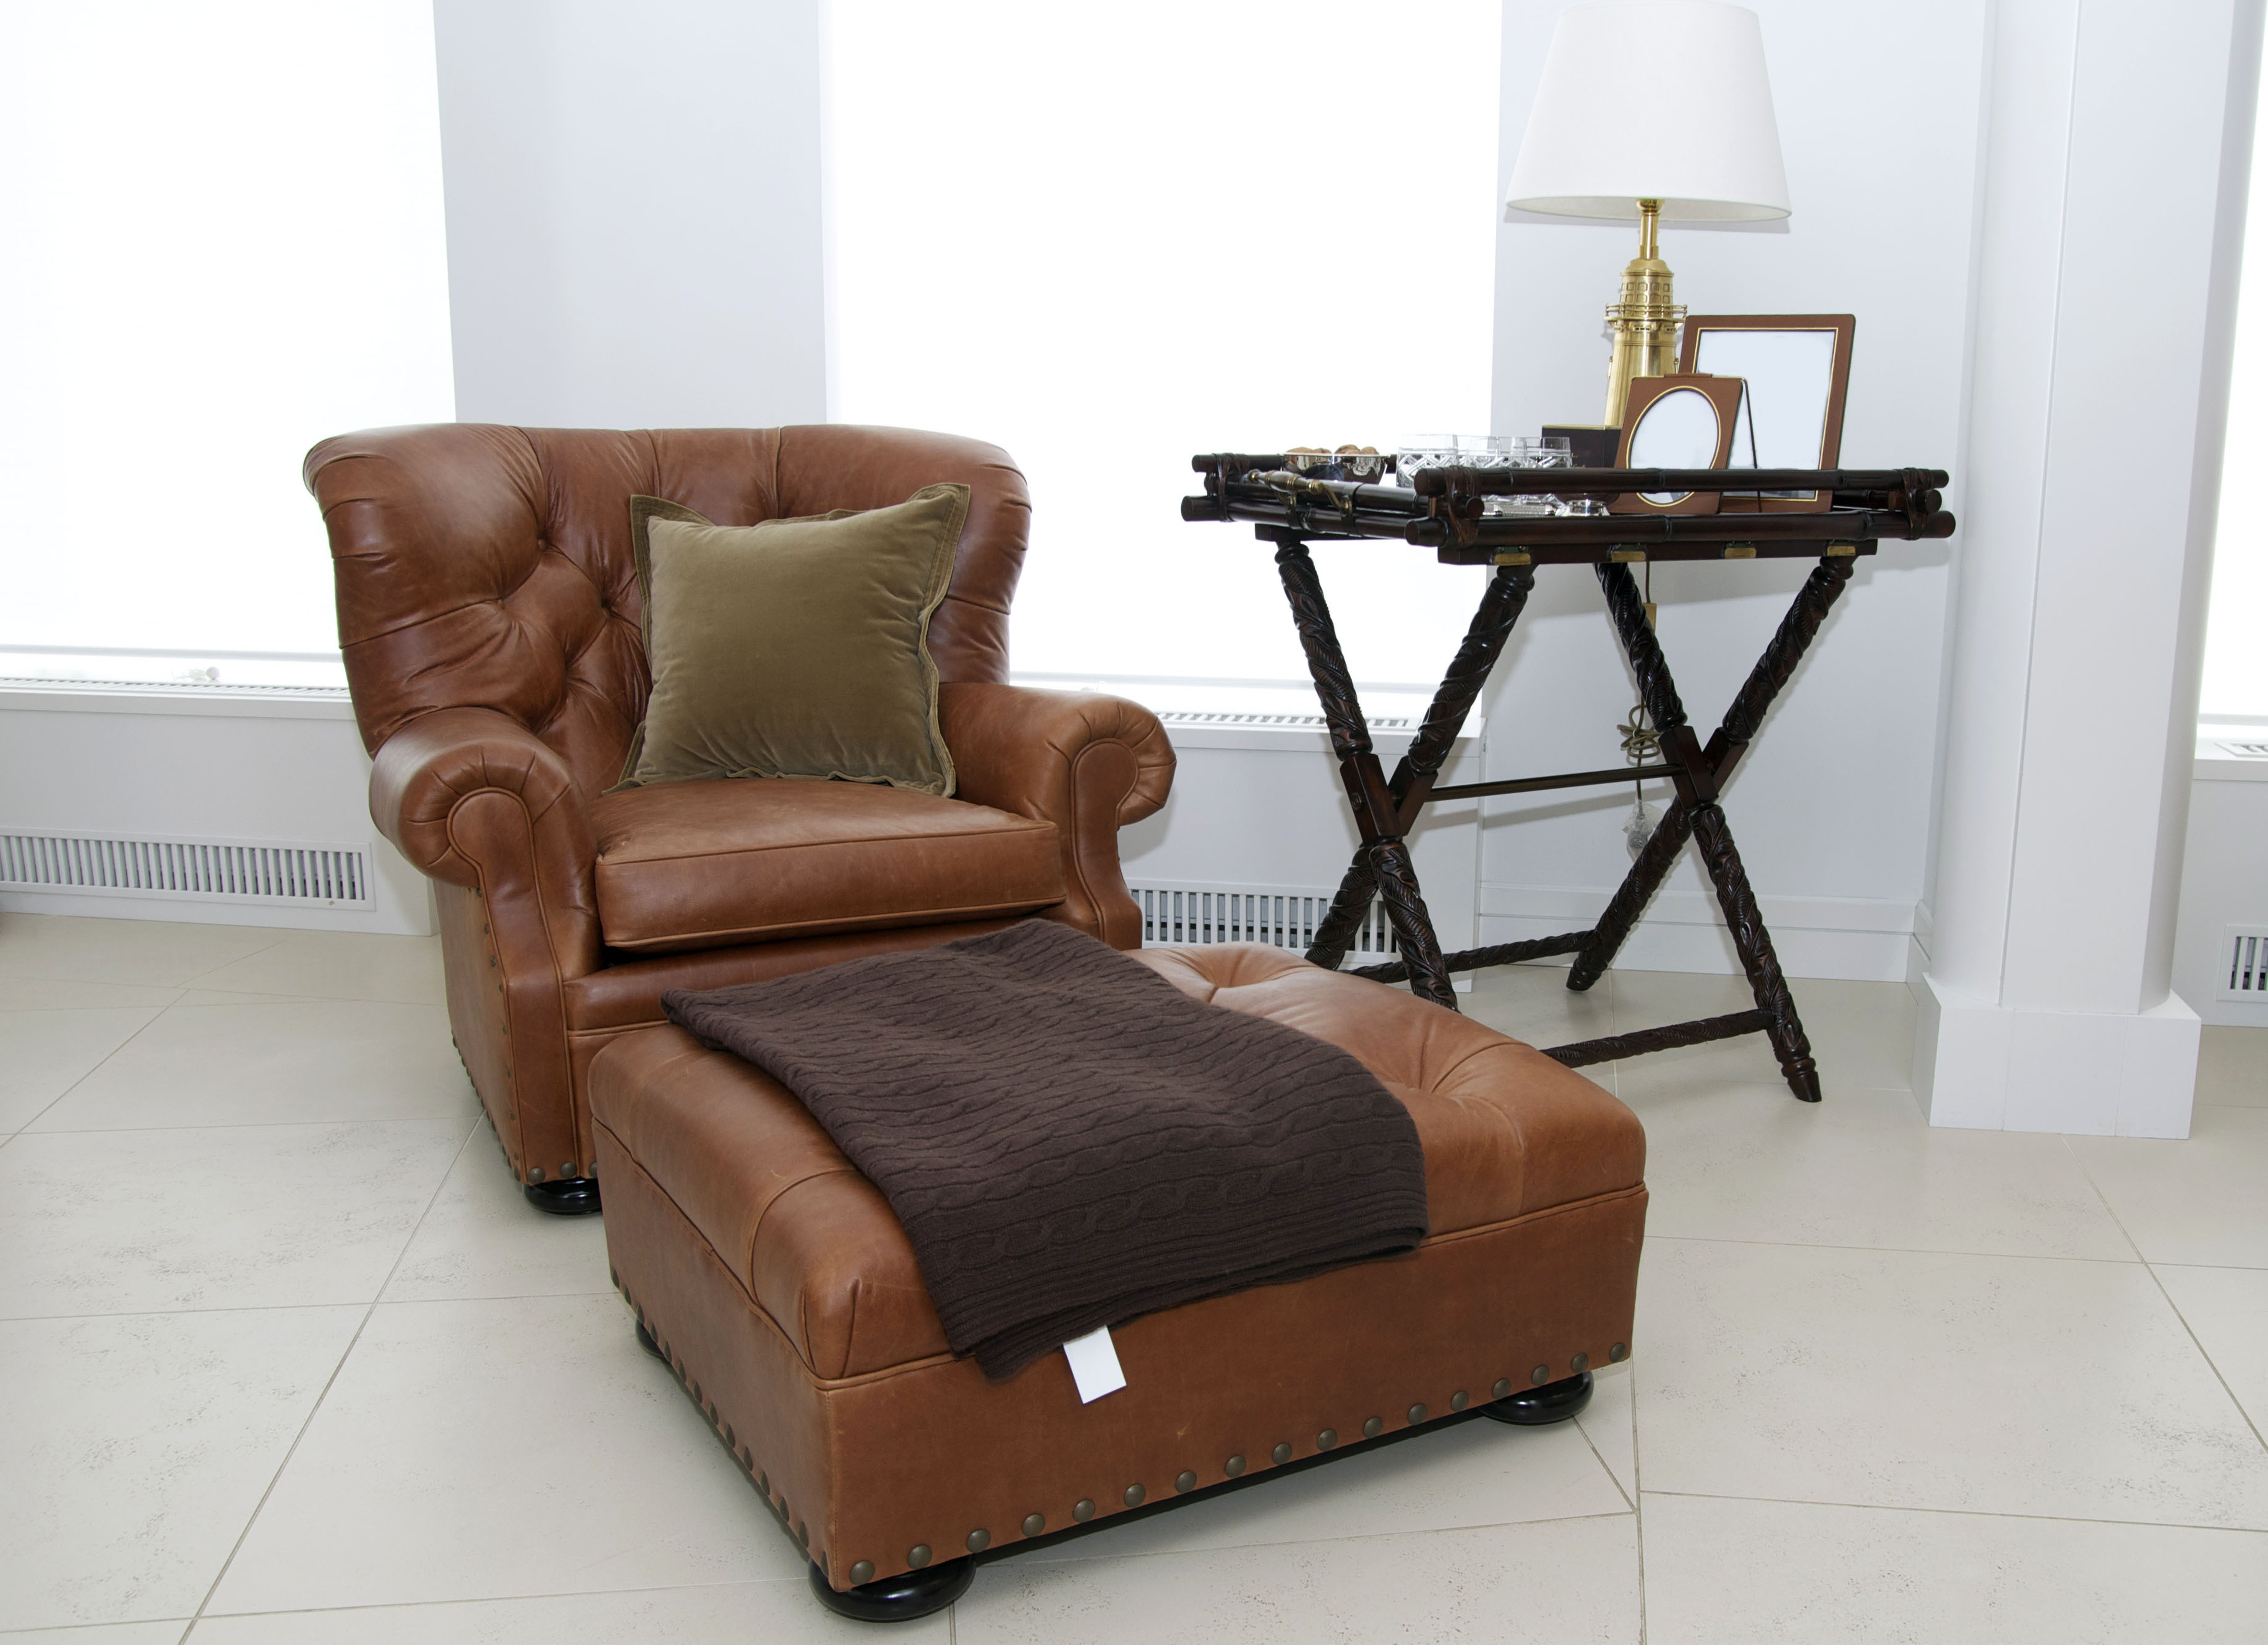 born furniture wingback leather wingback texture leather texture